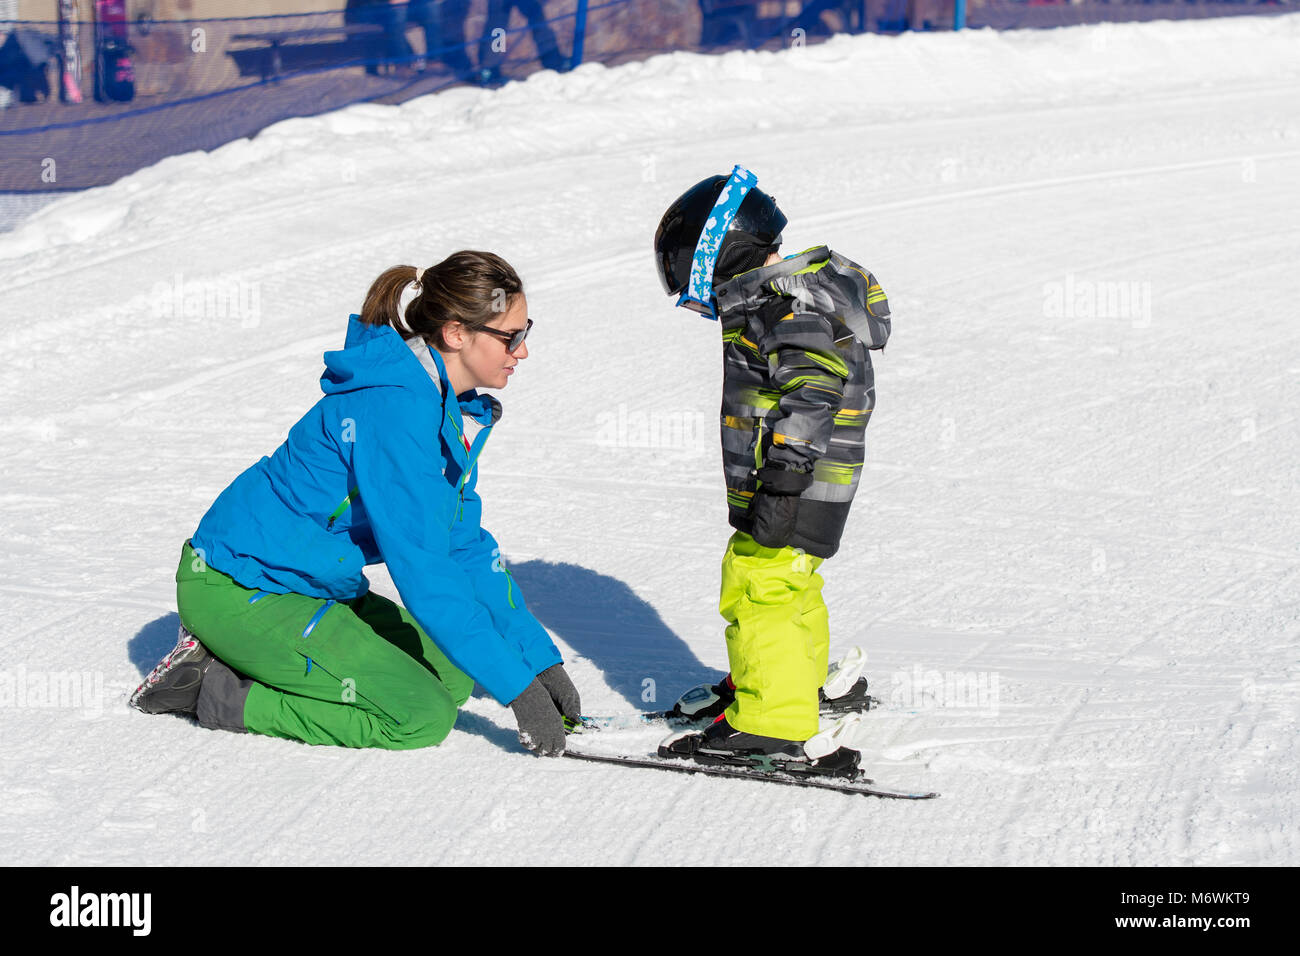 Ski Instructor with 3-Year Old Toddler Boy at a Mountain Resort - Stock Image